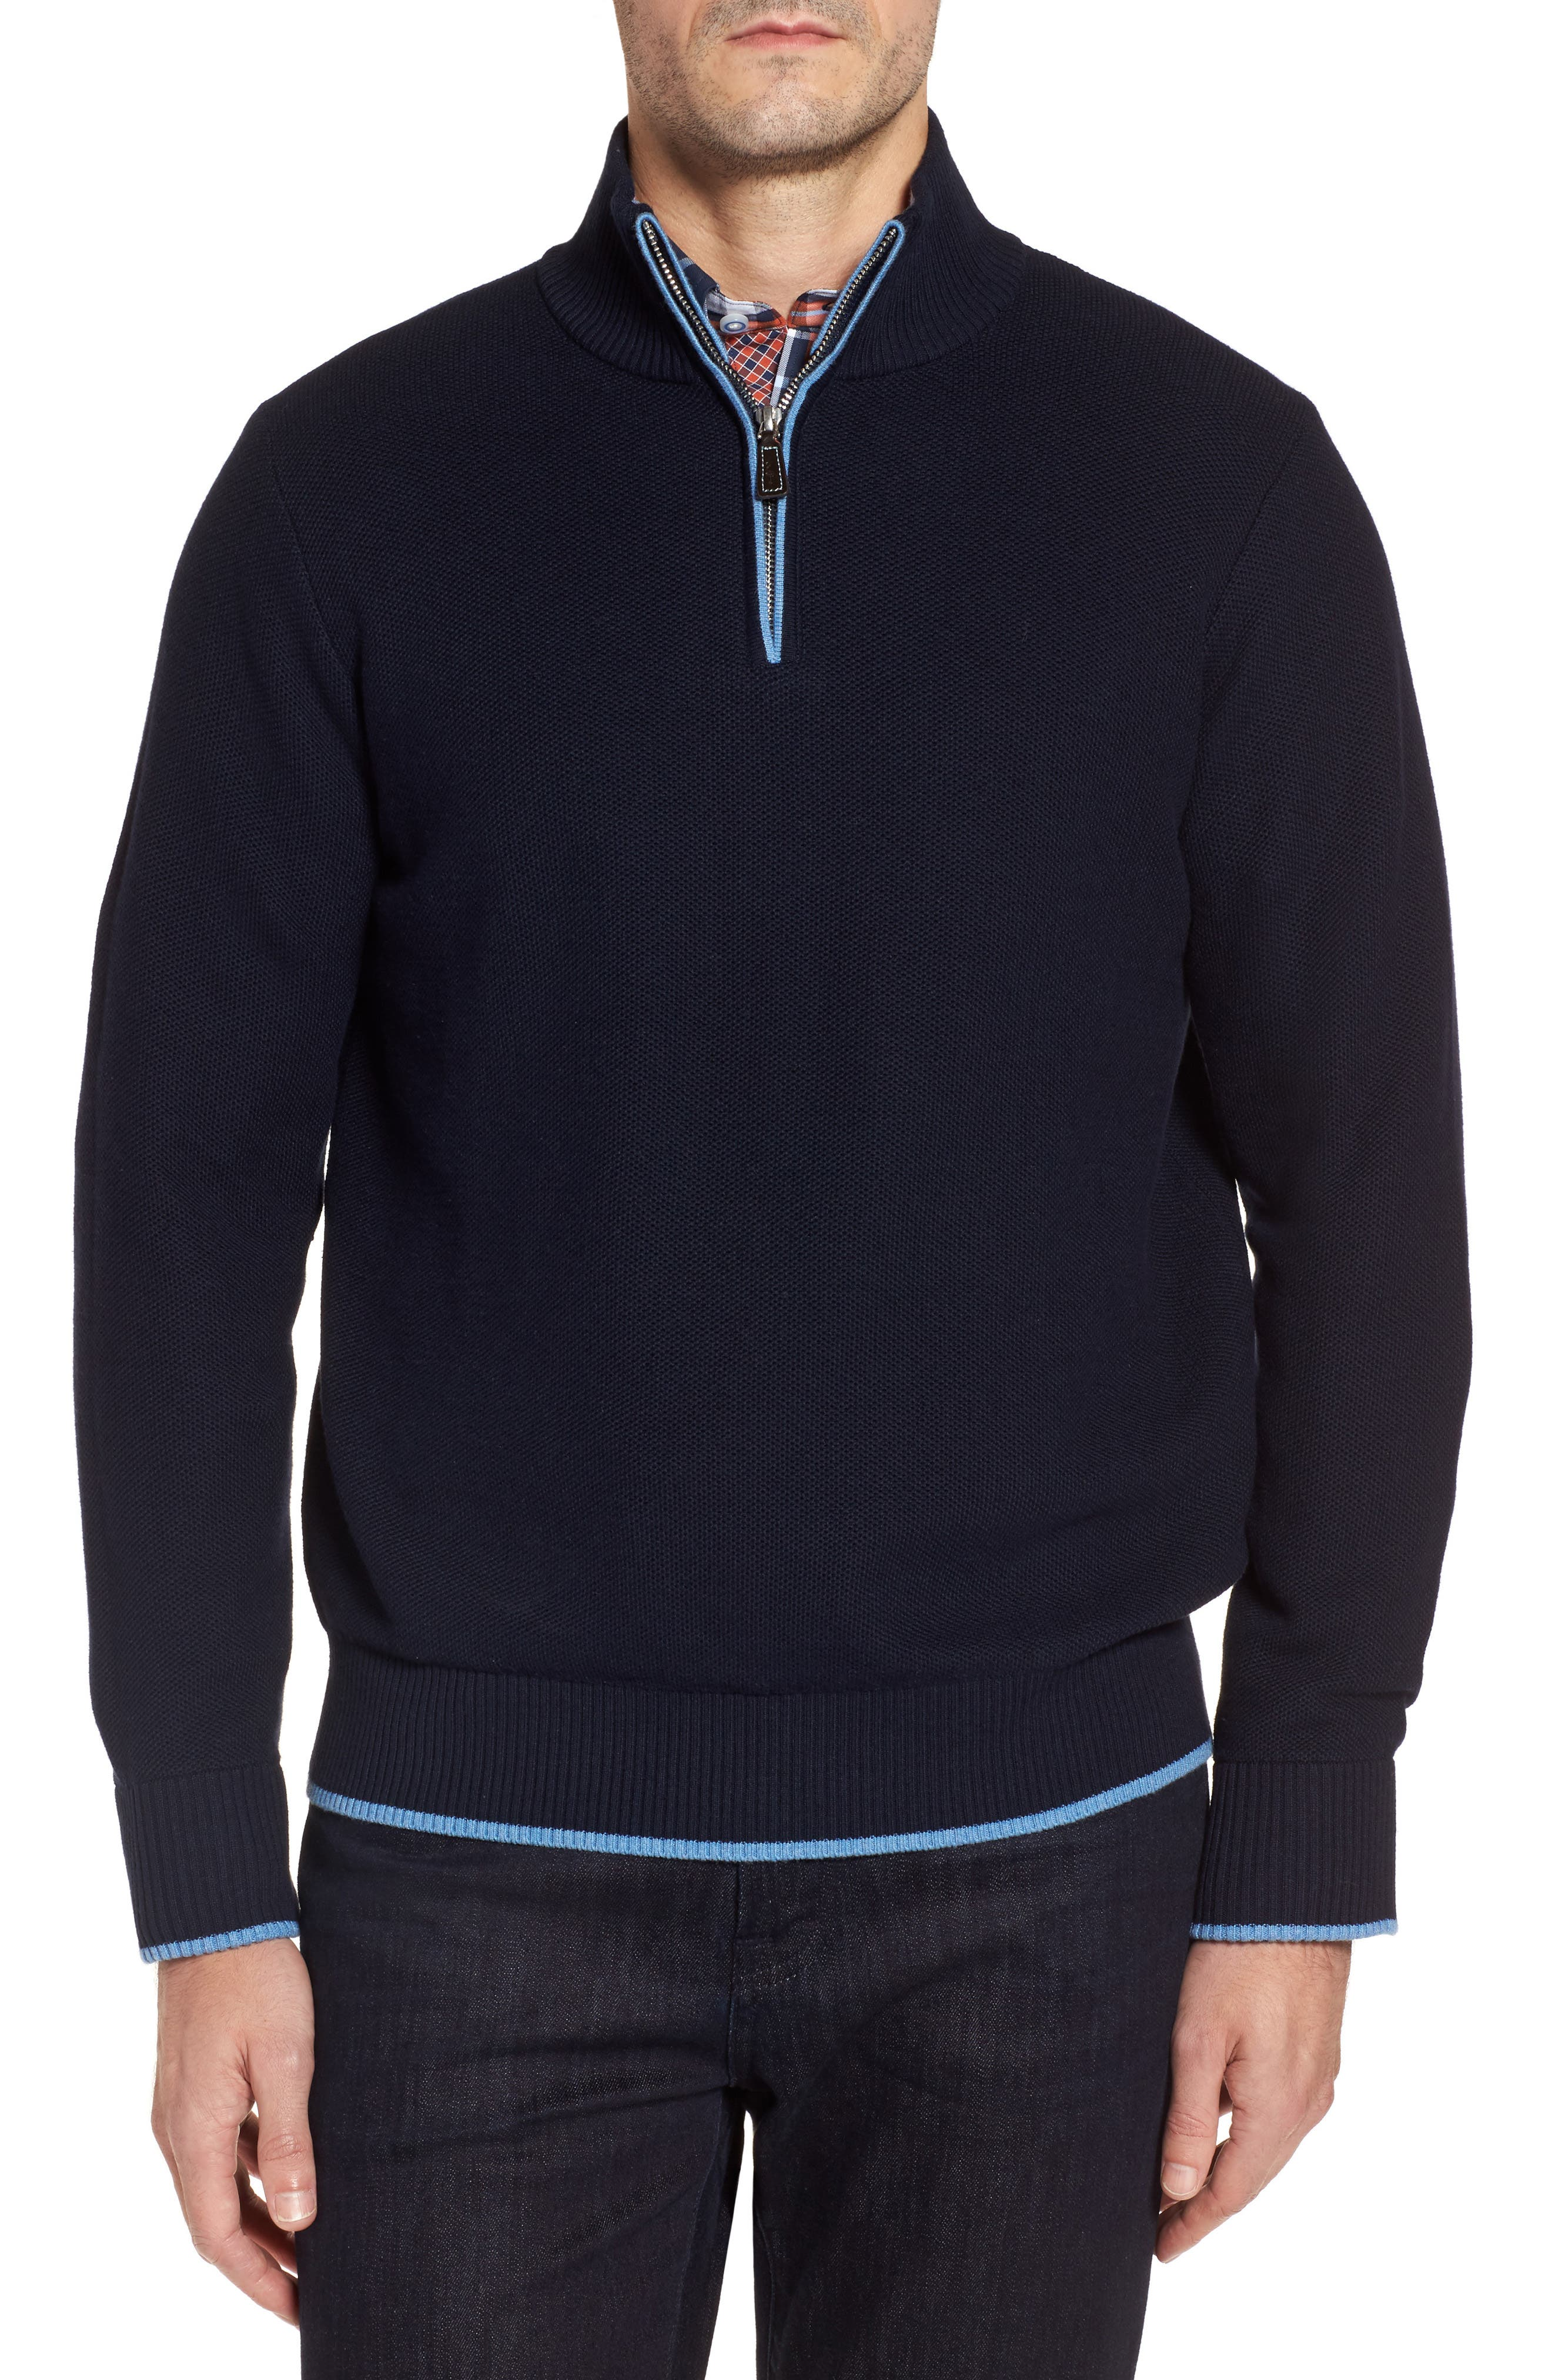 Alternate Image 1 Selected - TailorByrd Killona Tipped Quarter Zip Sweater